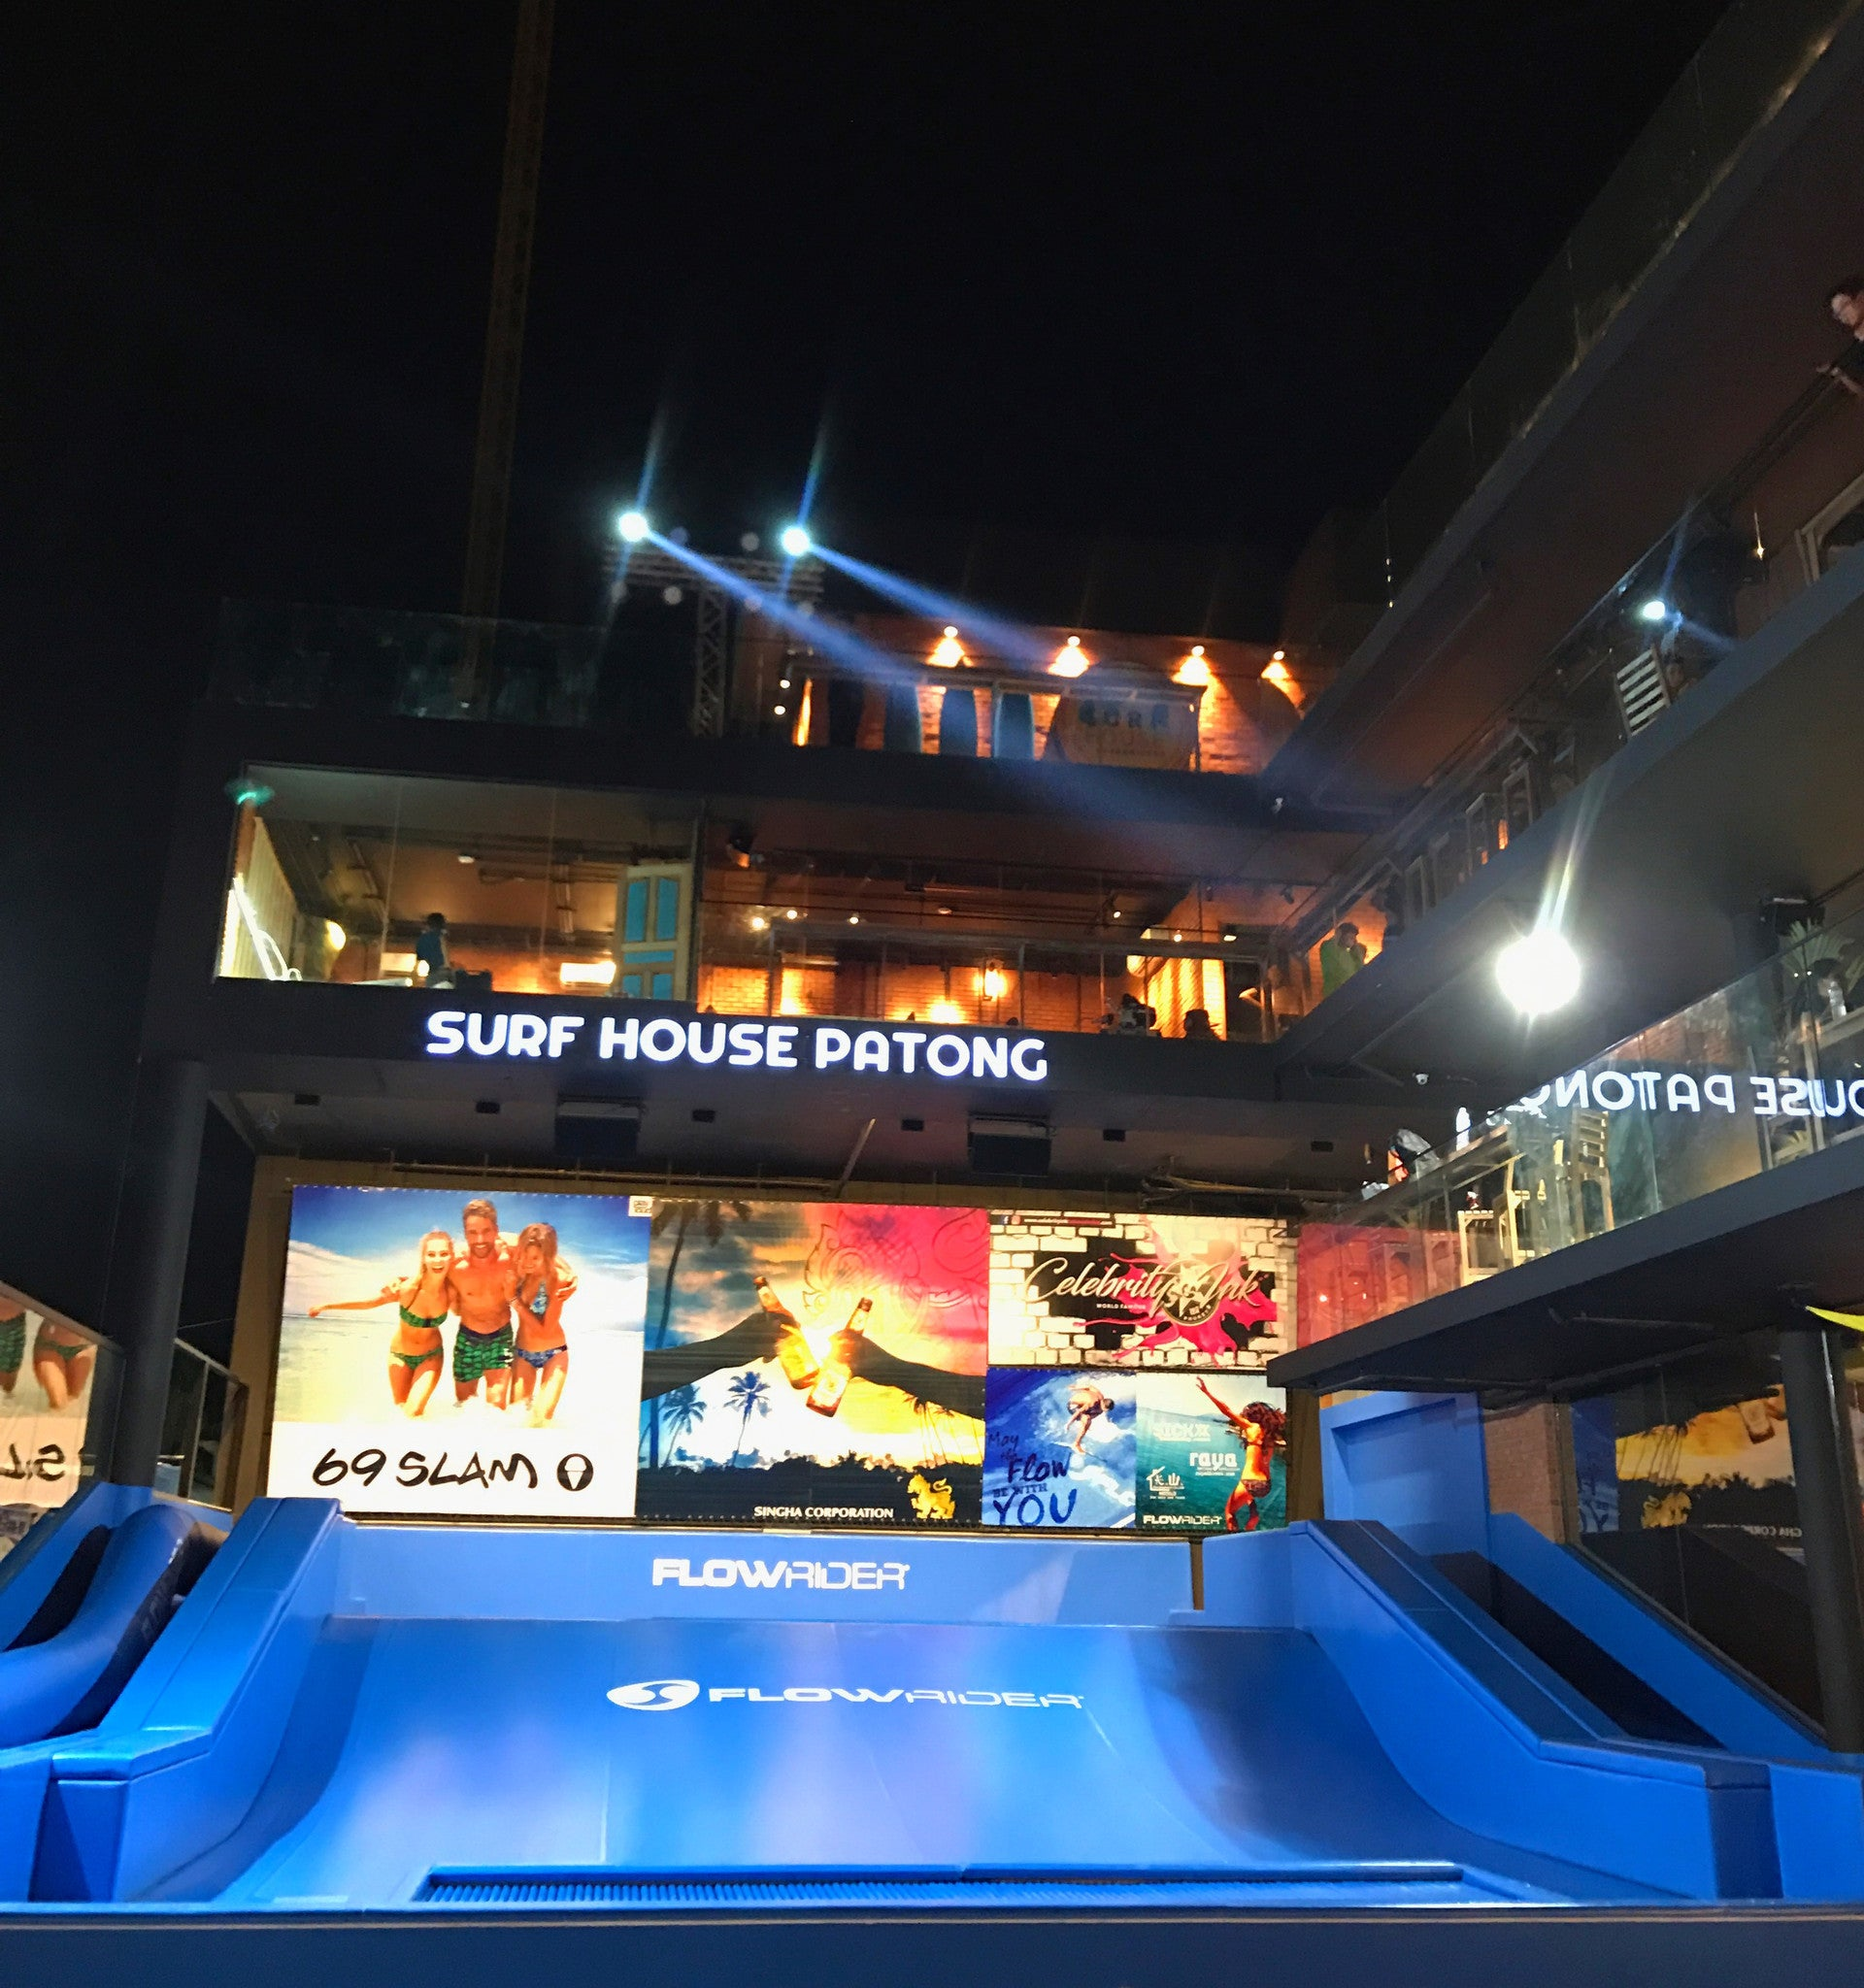 Surf House Patong, a new chapter begins!